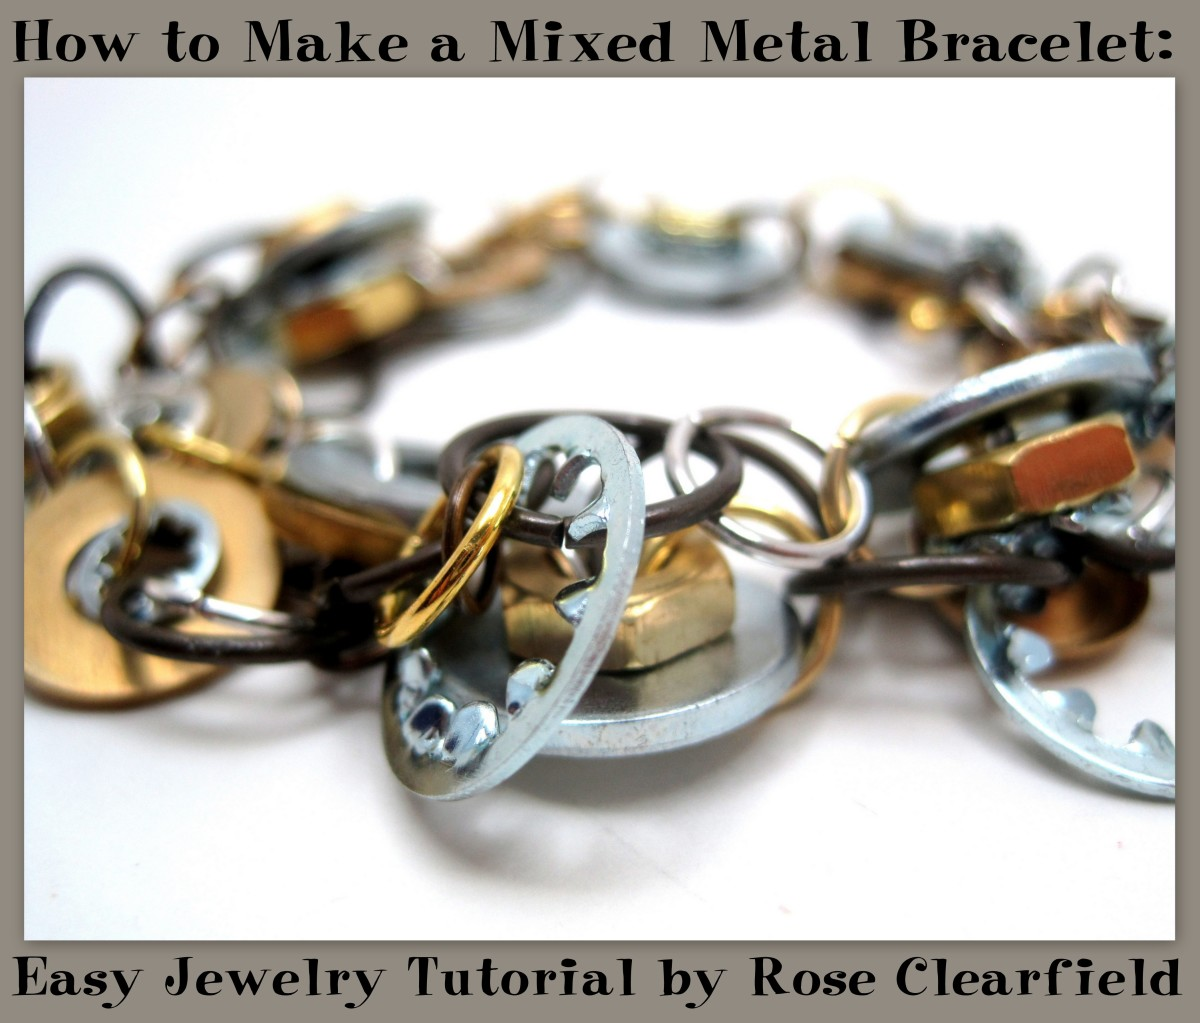 how-to-make-a-mixed-metal-bracelet-easy-jewelry-tutorial